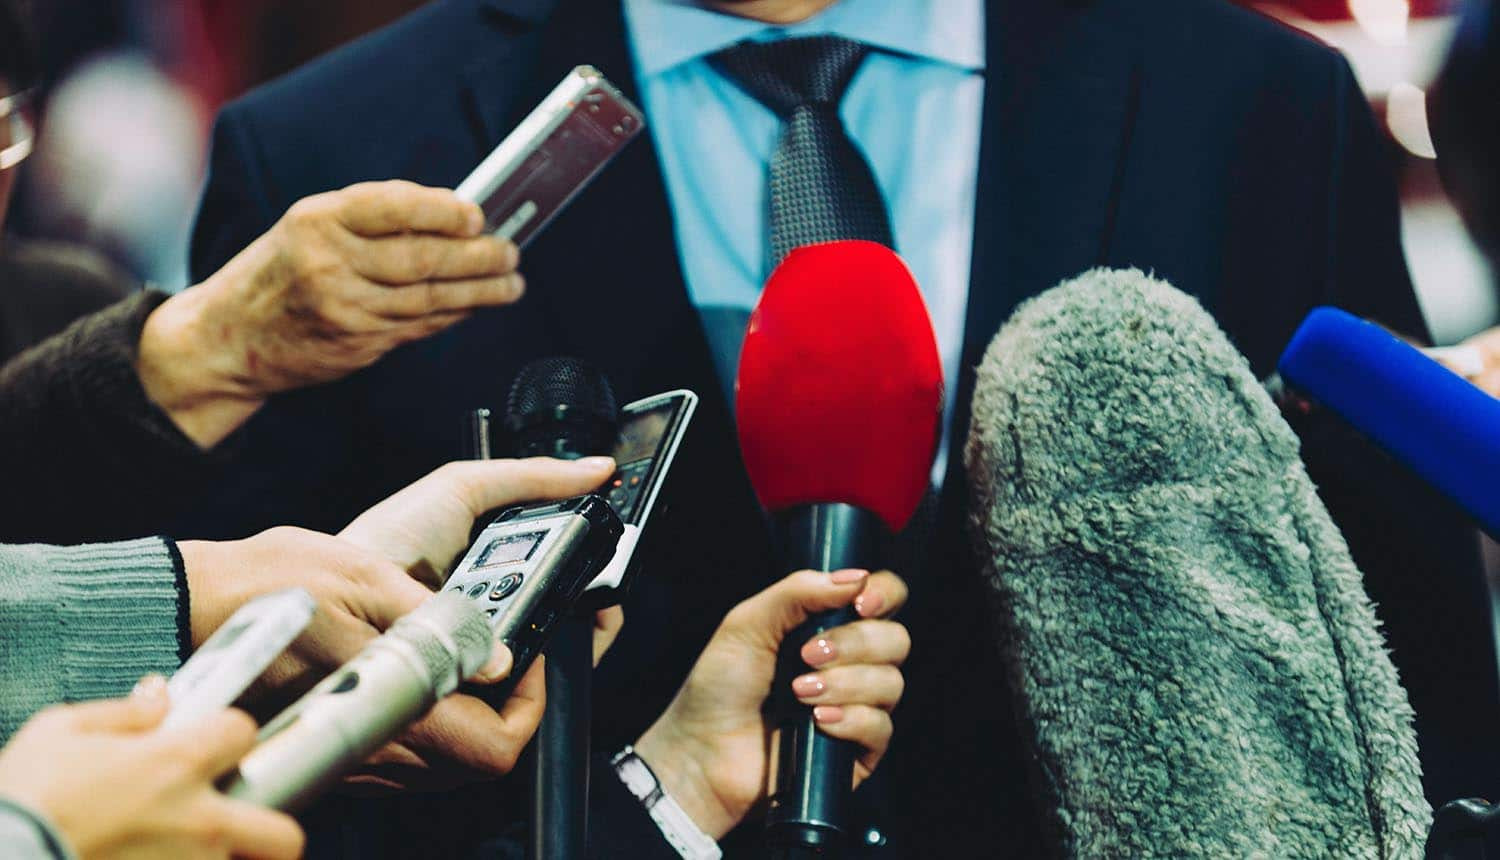 Image of man wearing a tie in front of microphones doing a media interview on data breaches for Under Armour and Panera Bread